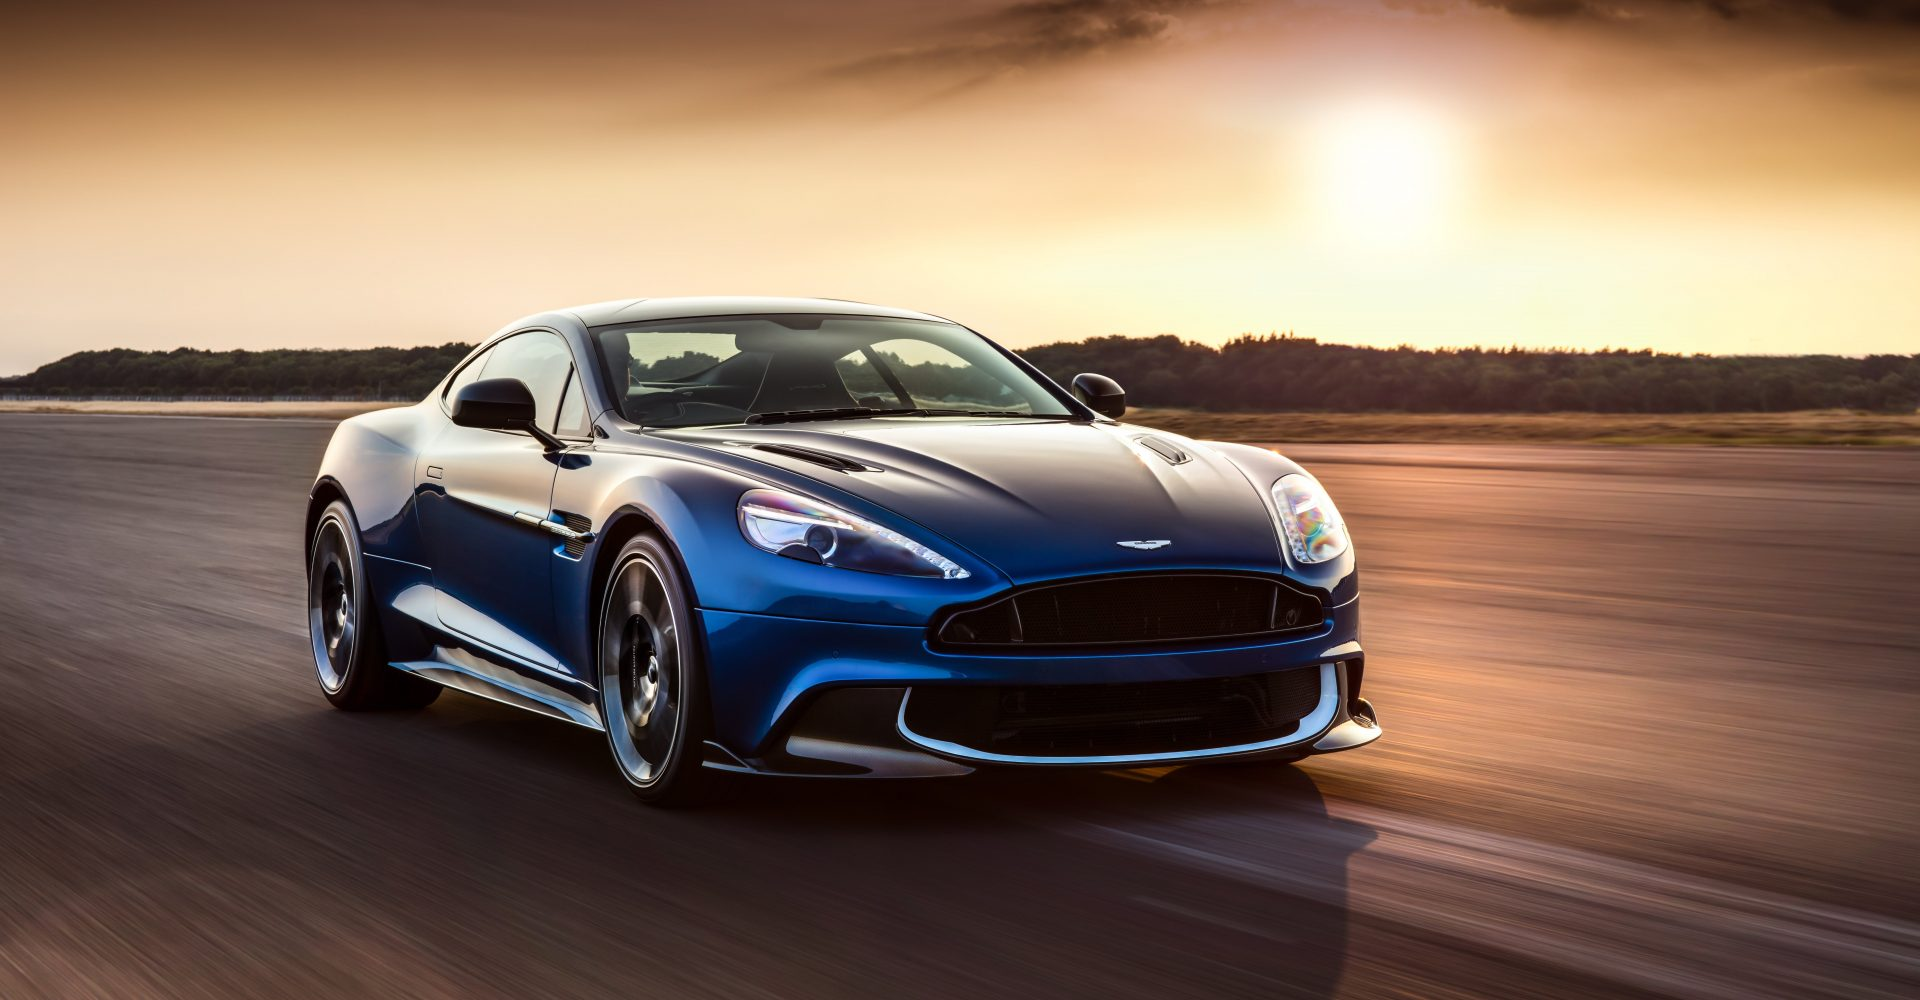 The New Aston Martin Vanquish S Is Absolutely Beautiful